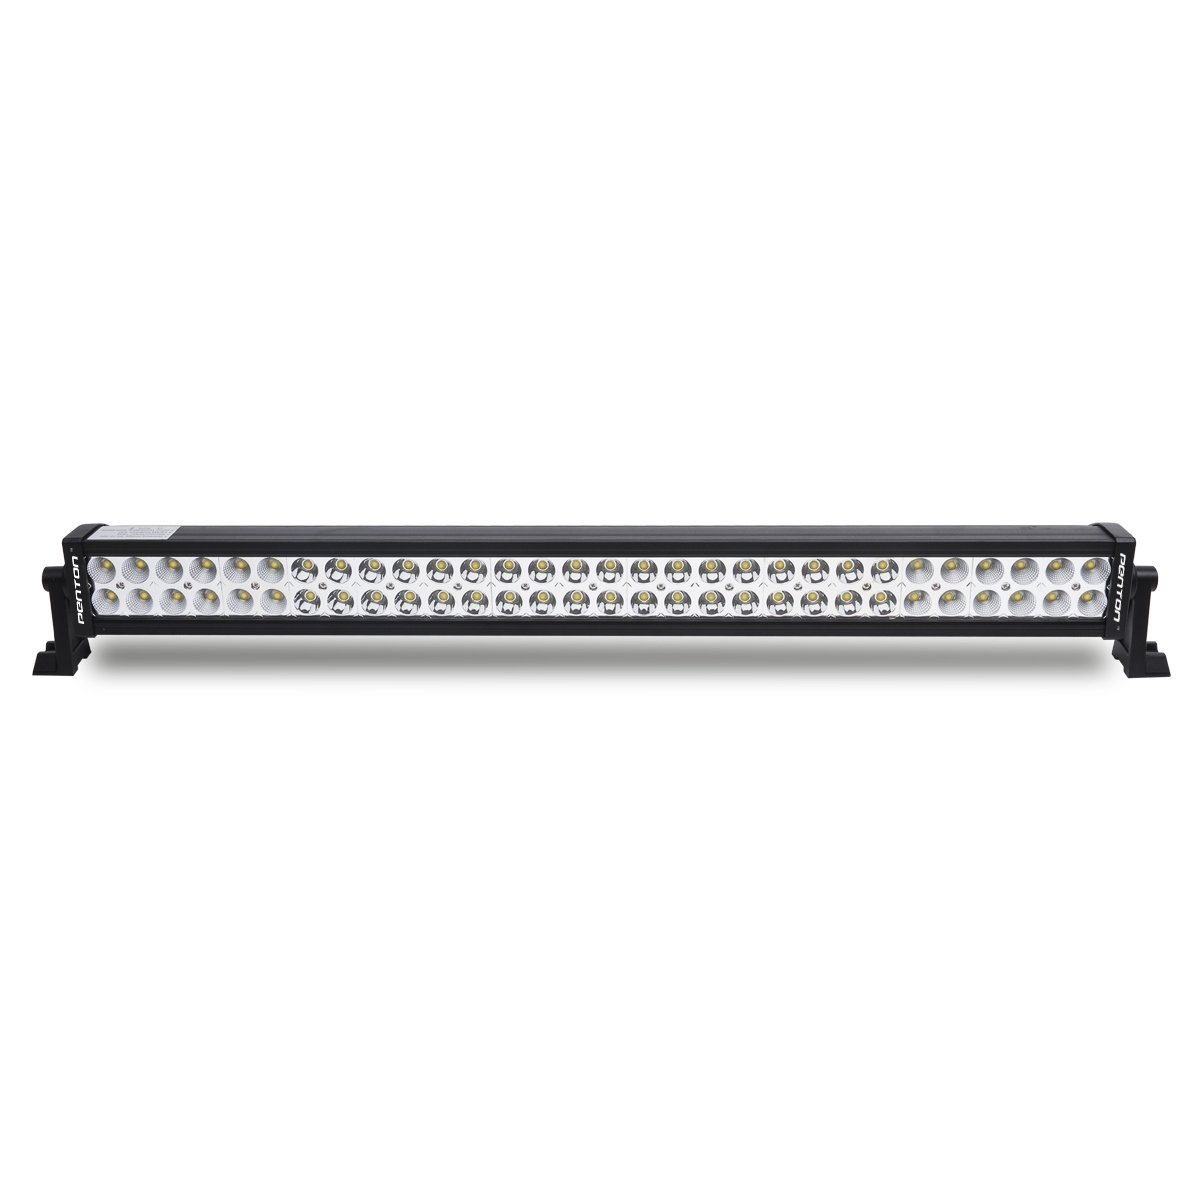 Ideal Superbright LED Light Bar For ATV